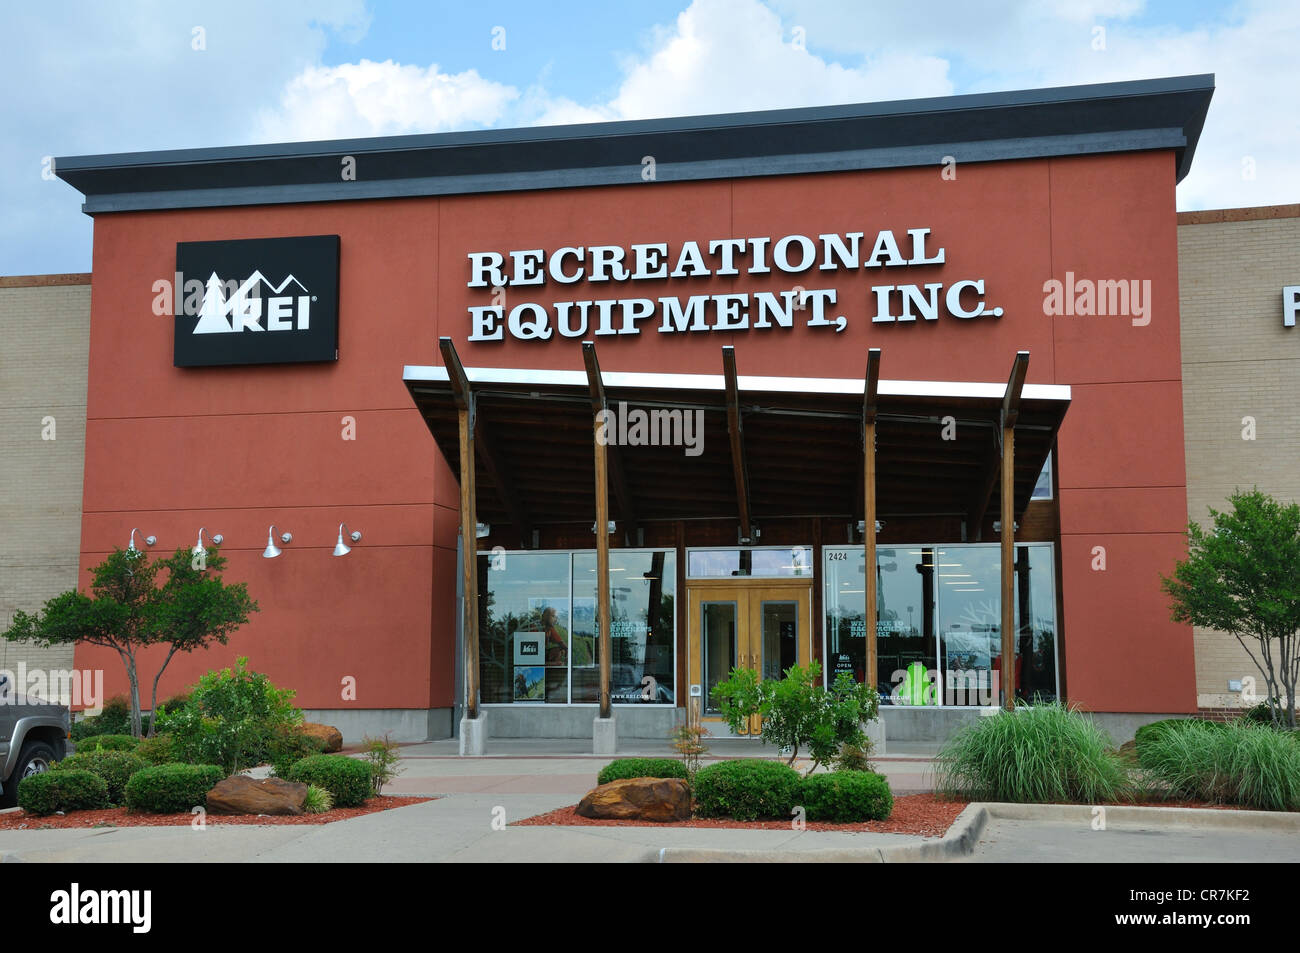 10% Annual Refund With $20 REI Lifetime Membership. For a one-time fee of $20, you can get a 10% annual refund when you sign up for an REI Lifetime Membership. Plus you'll get loads of deals, discounts, and tools. Click to learn more now.5/5(15).